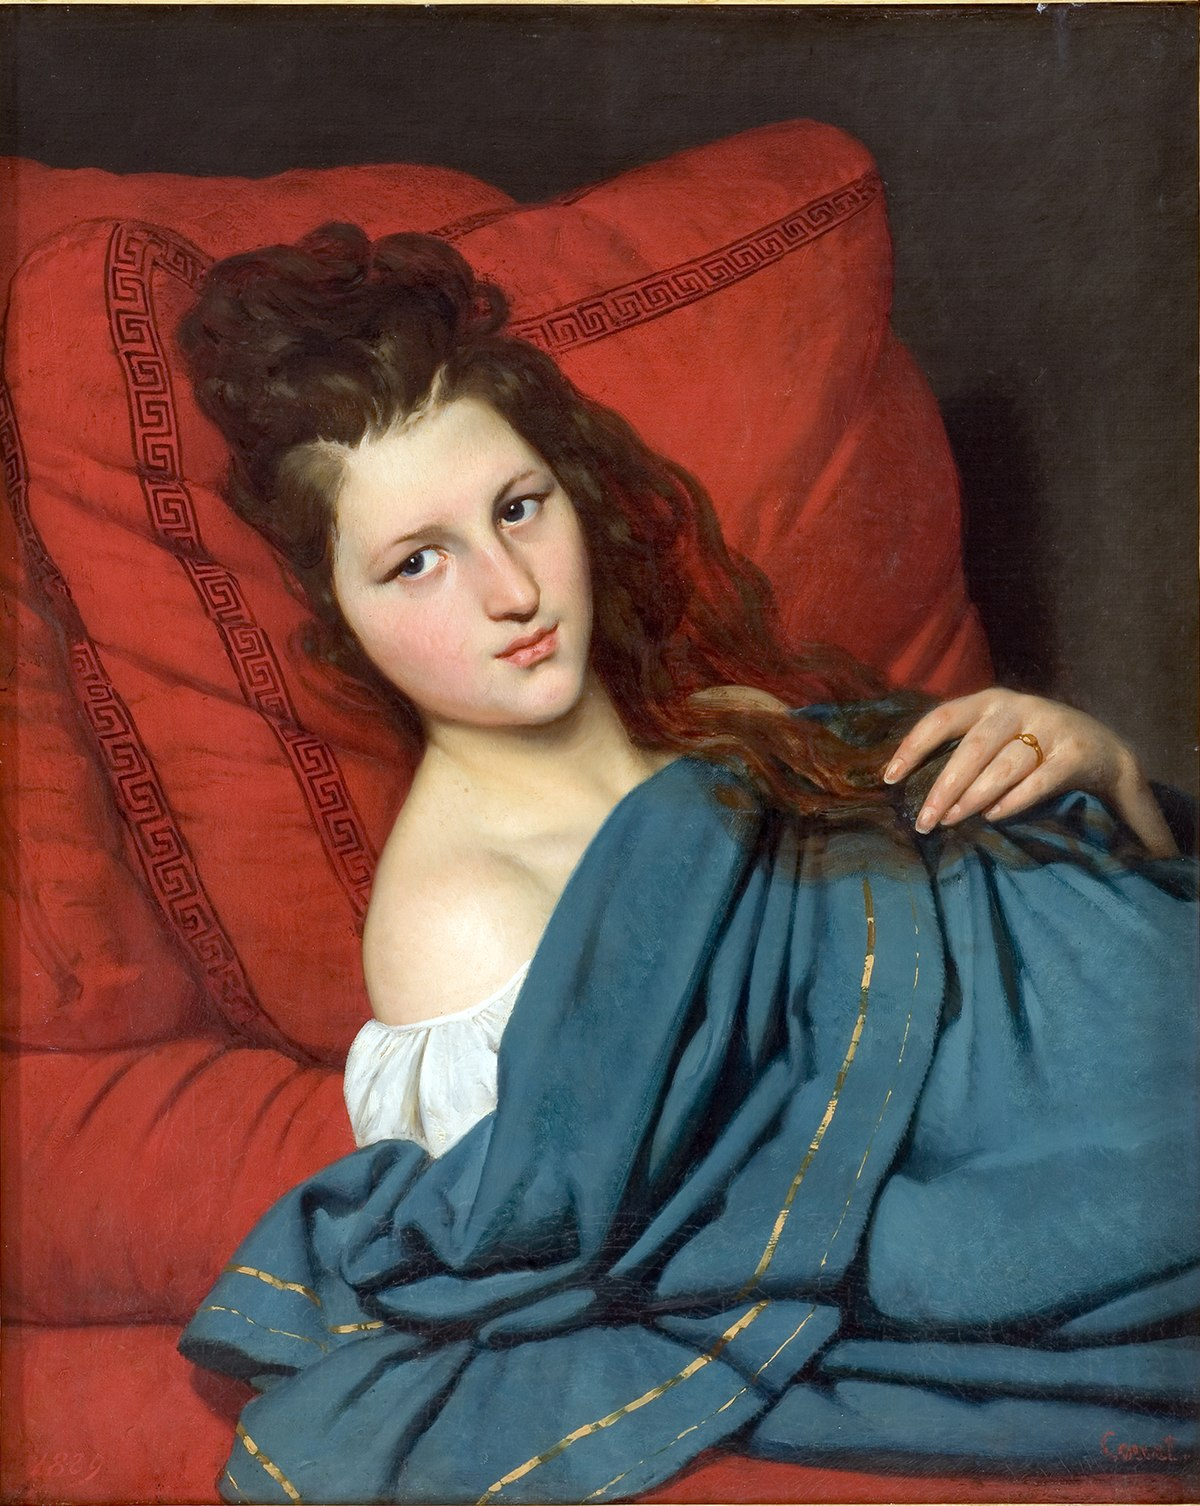 http://upload.wikimedia.org/wikipedia/commons/thumb/e/e2/Femme_divan_court.jpg/1200px-Femme_divan_court.jpg